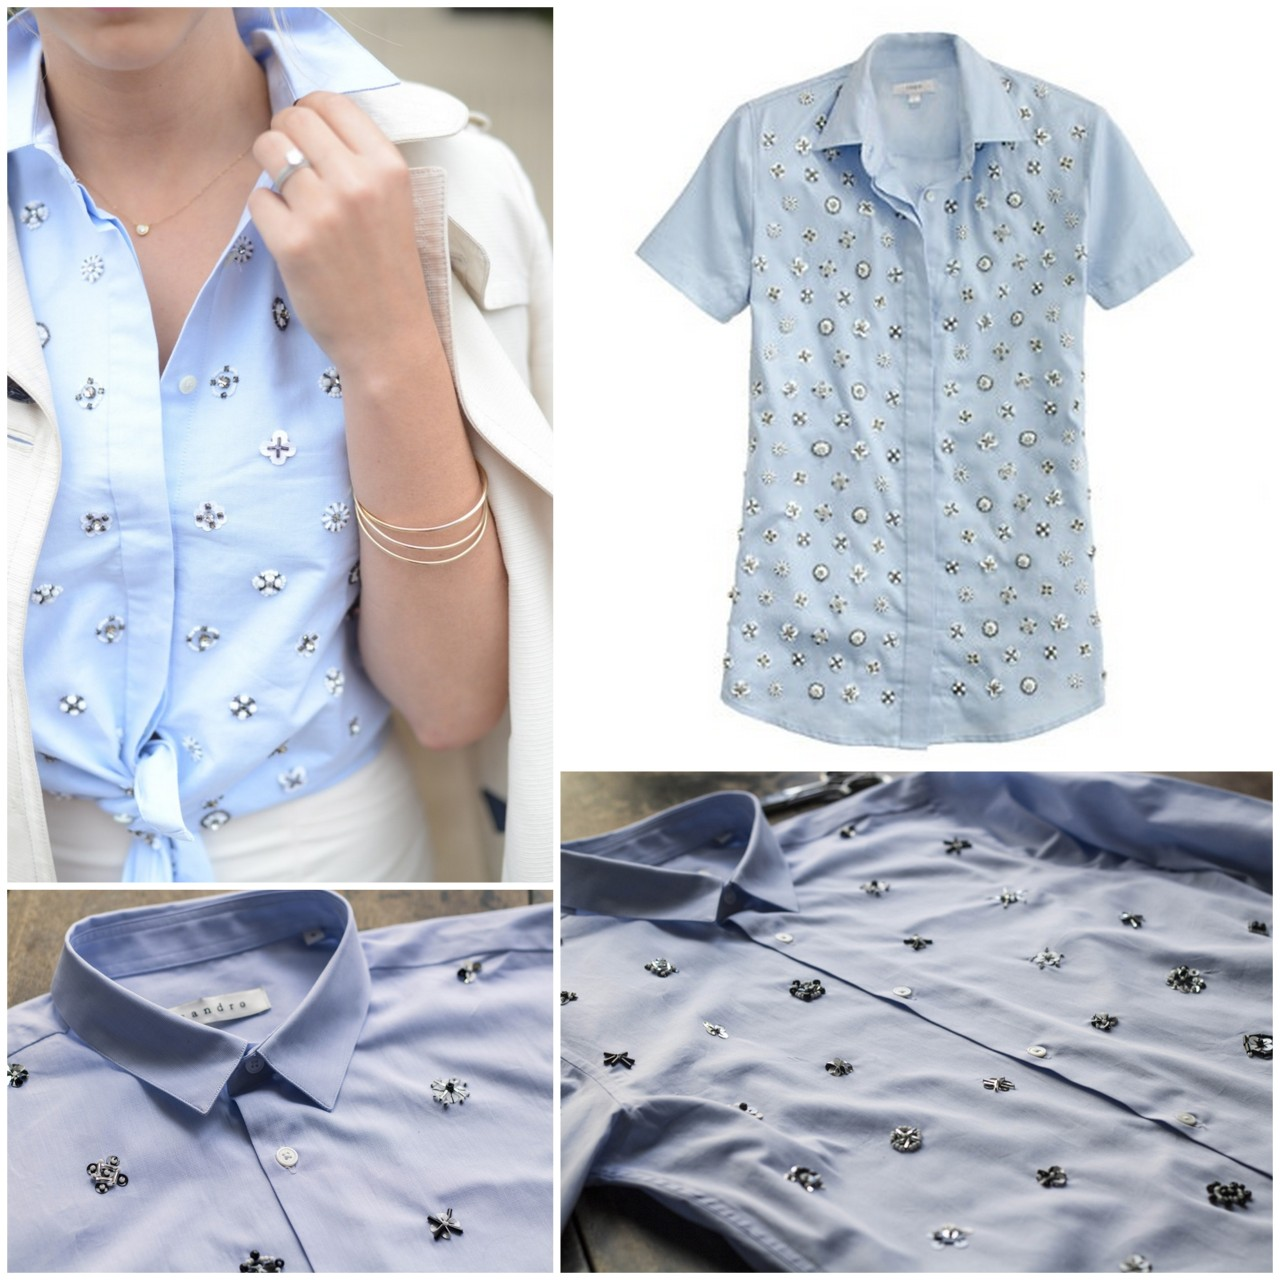 truebluemeandyou:  DIY J.Crew Knockoff Beaded Oxford Shirt Tutorial from Make My Lemonade here. I used Chrome to translate French to English. For pages more of knockoffs go here: truebluemeandyou.tumblr.com/tagged/knockoff Top Left Photo: Cupcakes and Cashmere wearing J.Crew shirt here.  Top Right Photo: $198 J.Crew Beaded Shirt here.  Bottom Photos: DIY by Make My Lemonade.